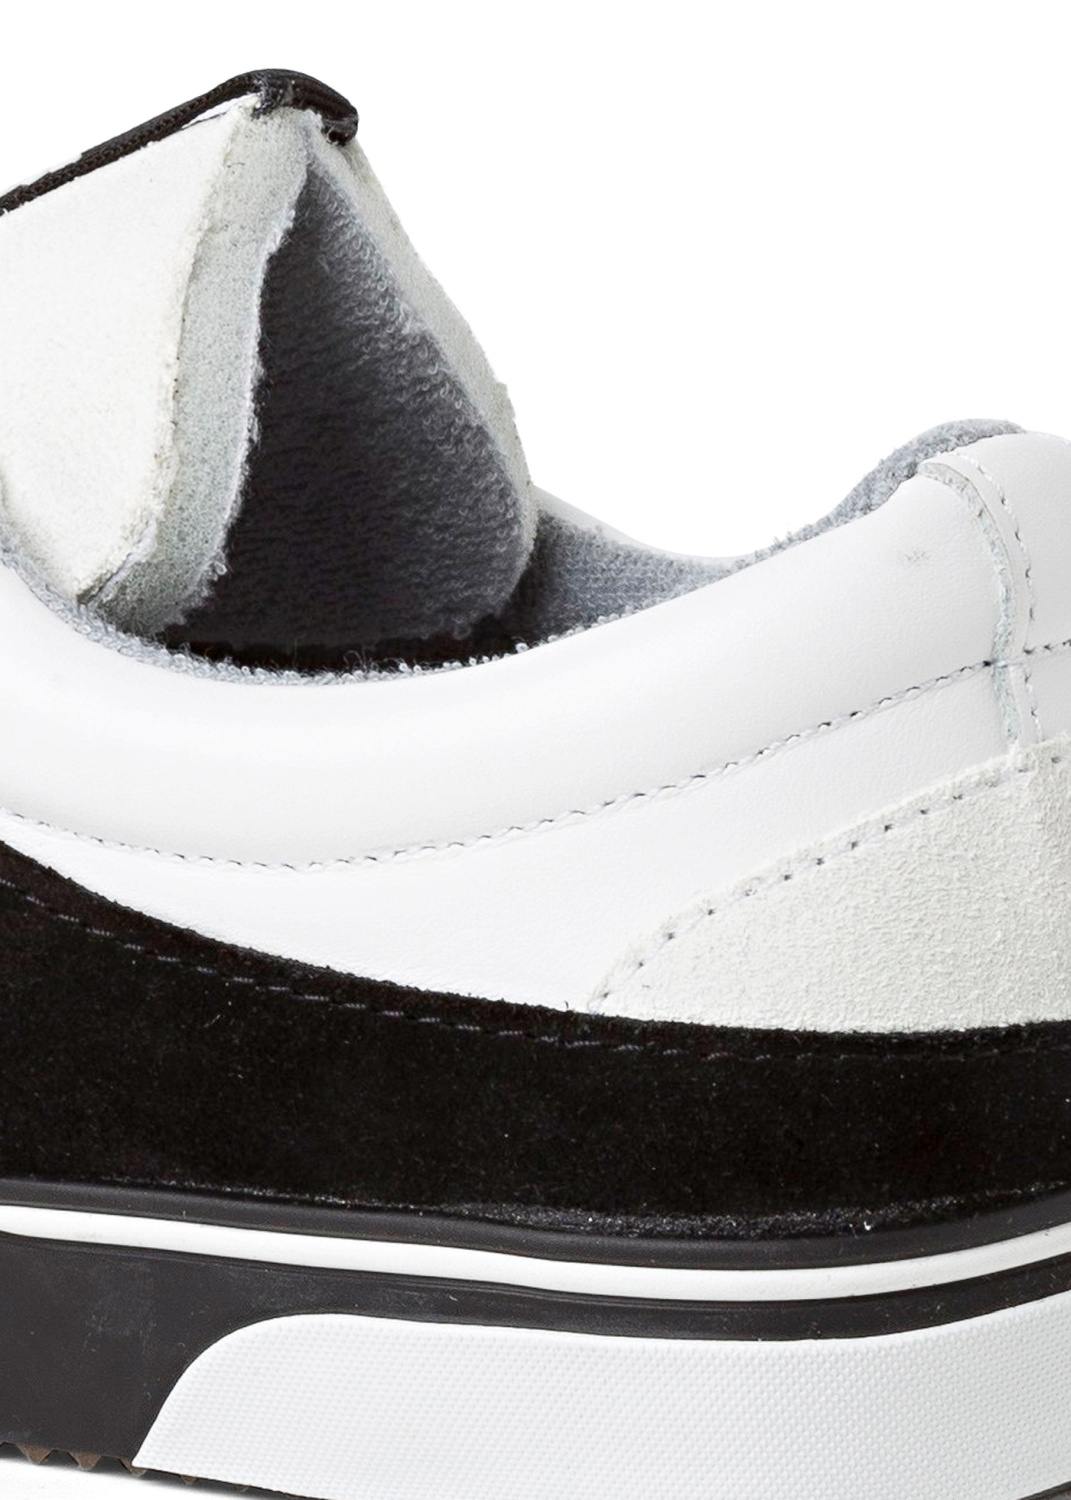 VULC PALM LOW image number 3